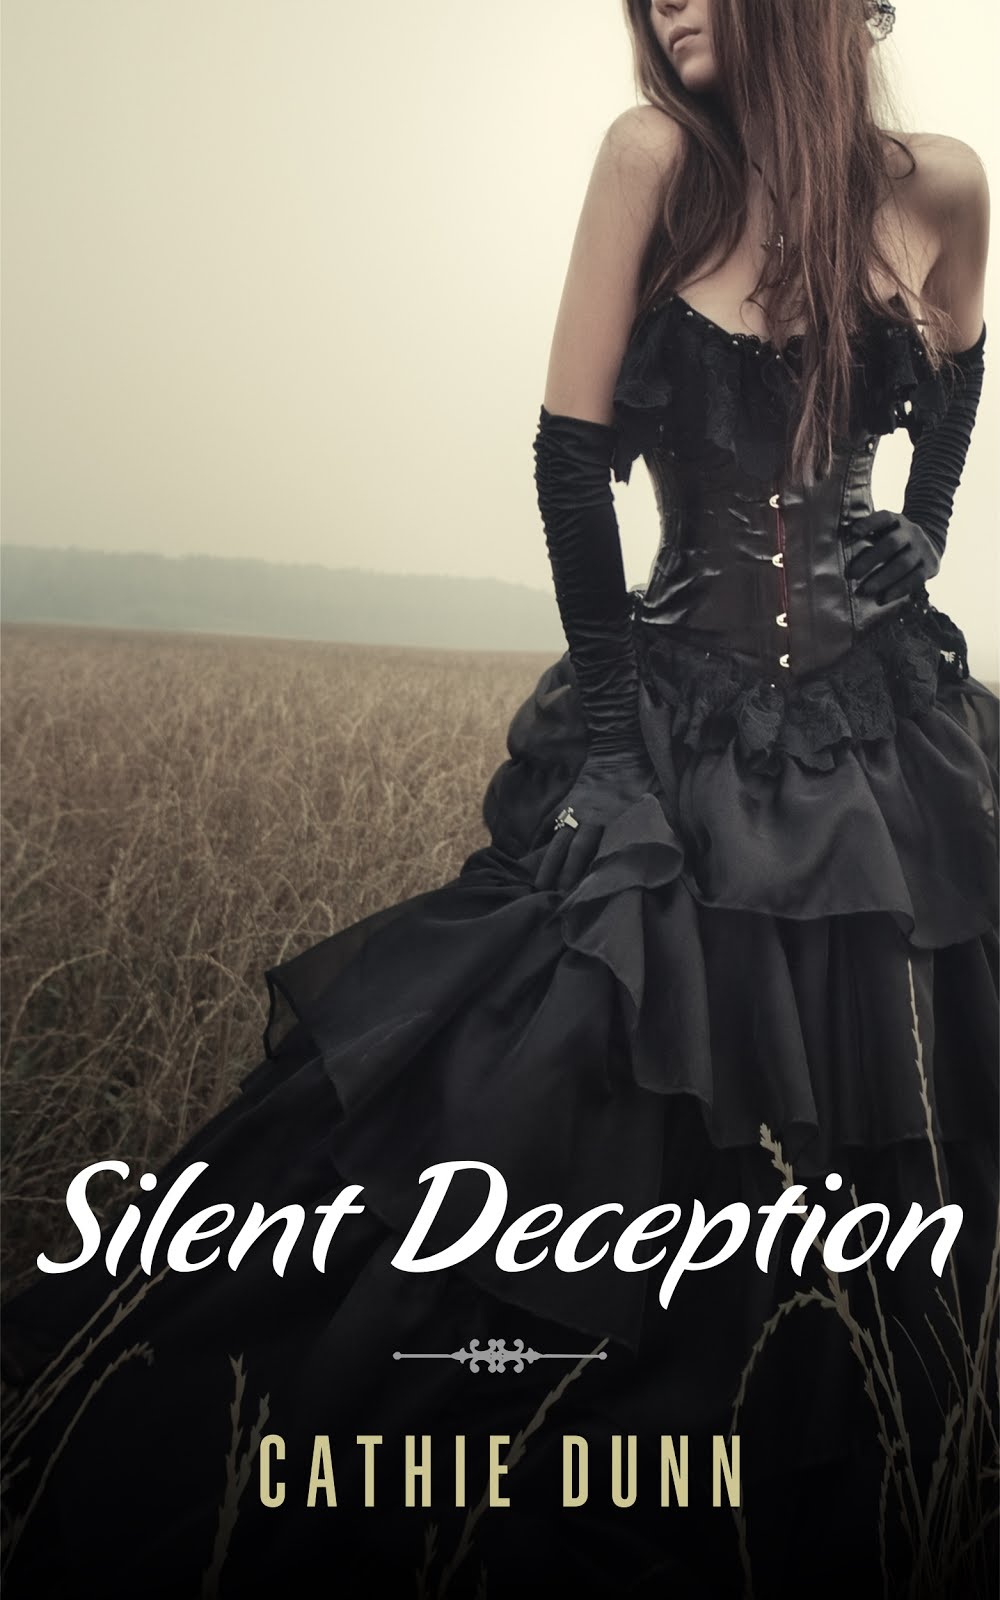 Silent Deception – A Gothic Romance set in Cornwall